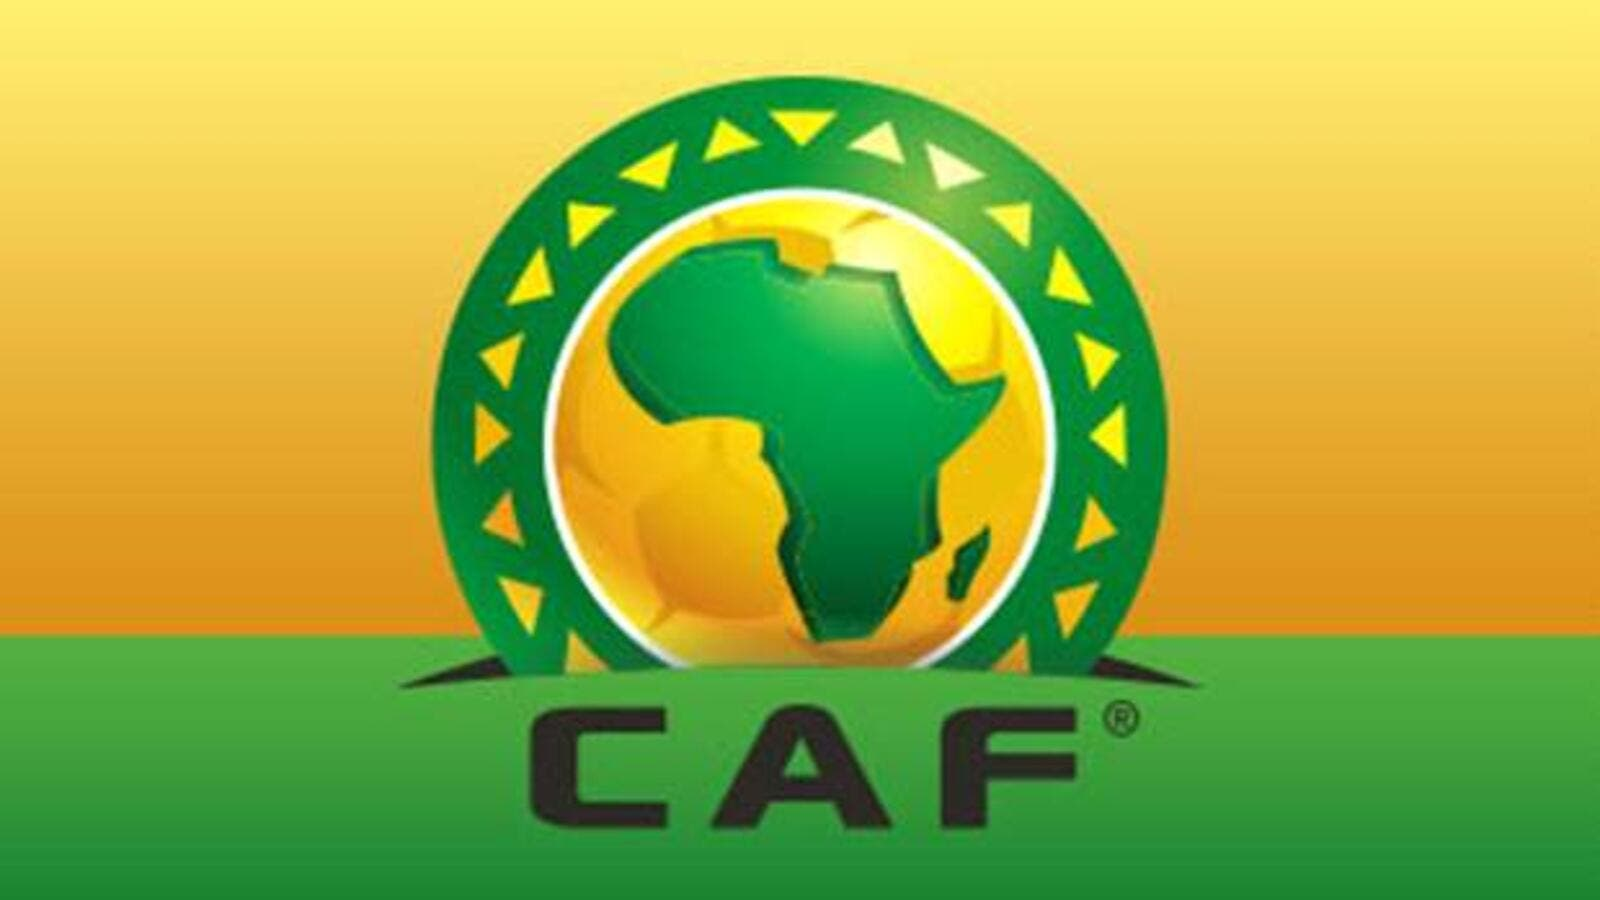 For the proposal from the CAF Executive Committee, for the modifications of the Statutes, Rules governing the application of the Statutes and Rules of the General Assembly of CAF, 42 voted in favour with one against